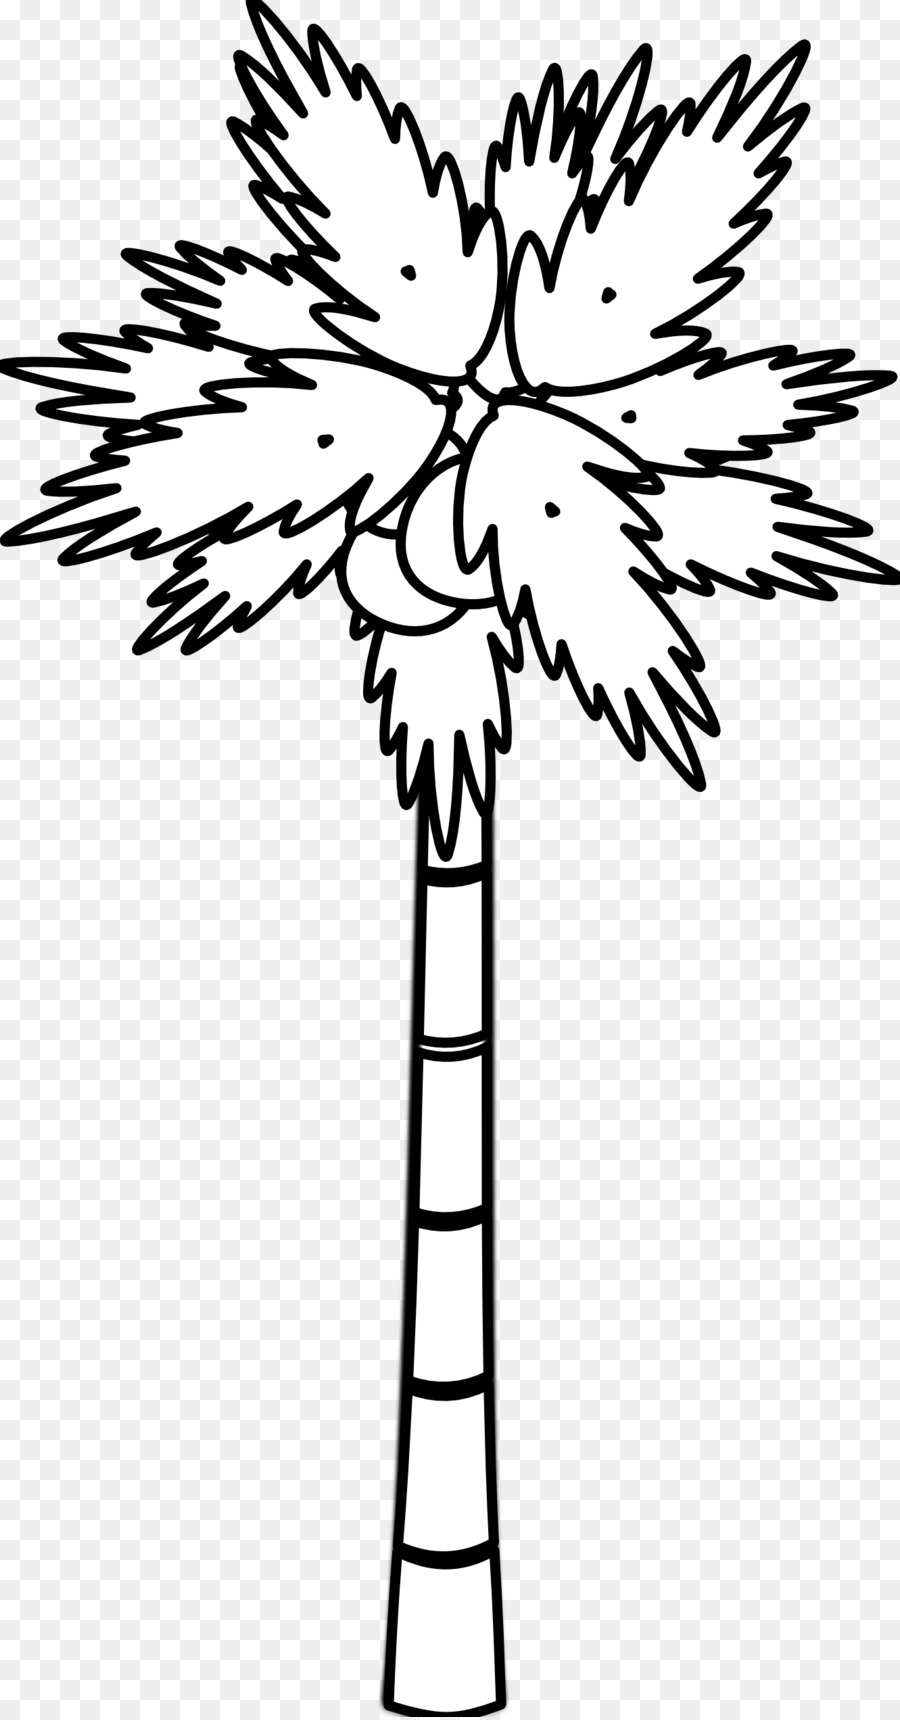 coconut tree arecaceae clip art black and white tree tattoos png rh kisspng com tree branch clipart black and white black and white christmas tree clip art free